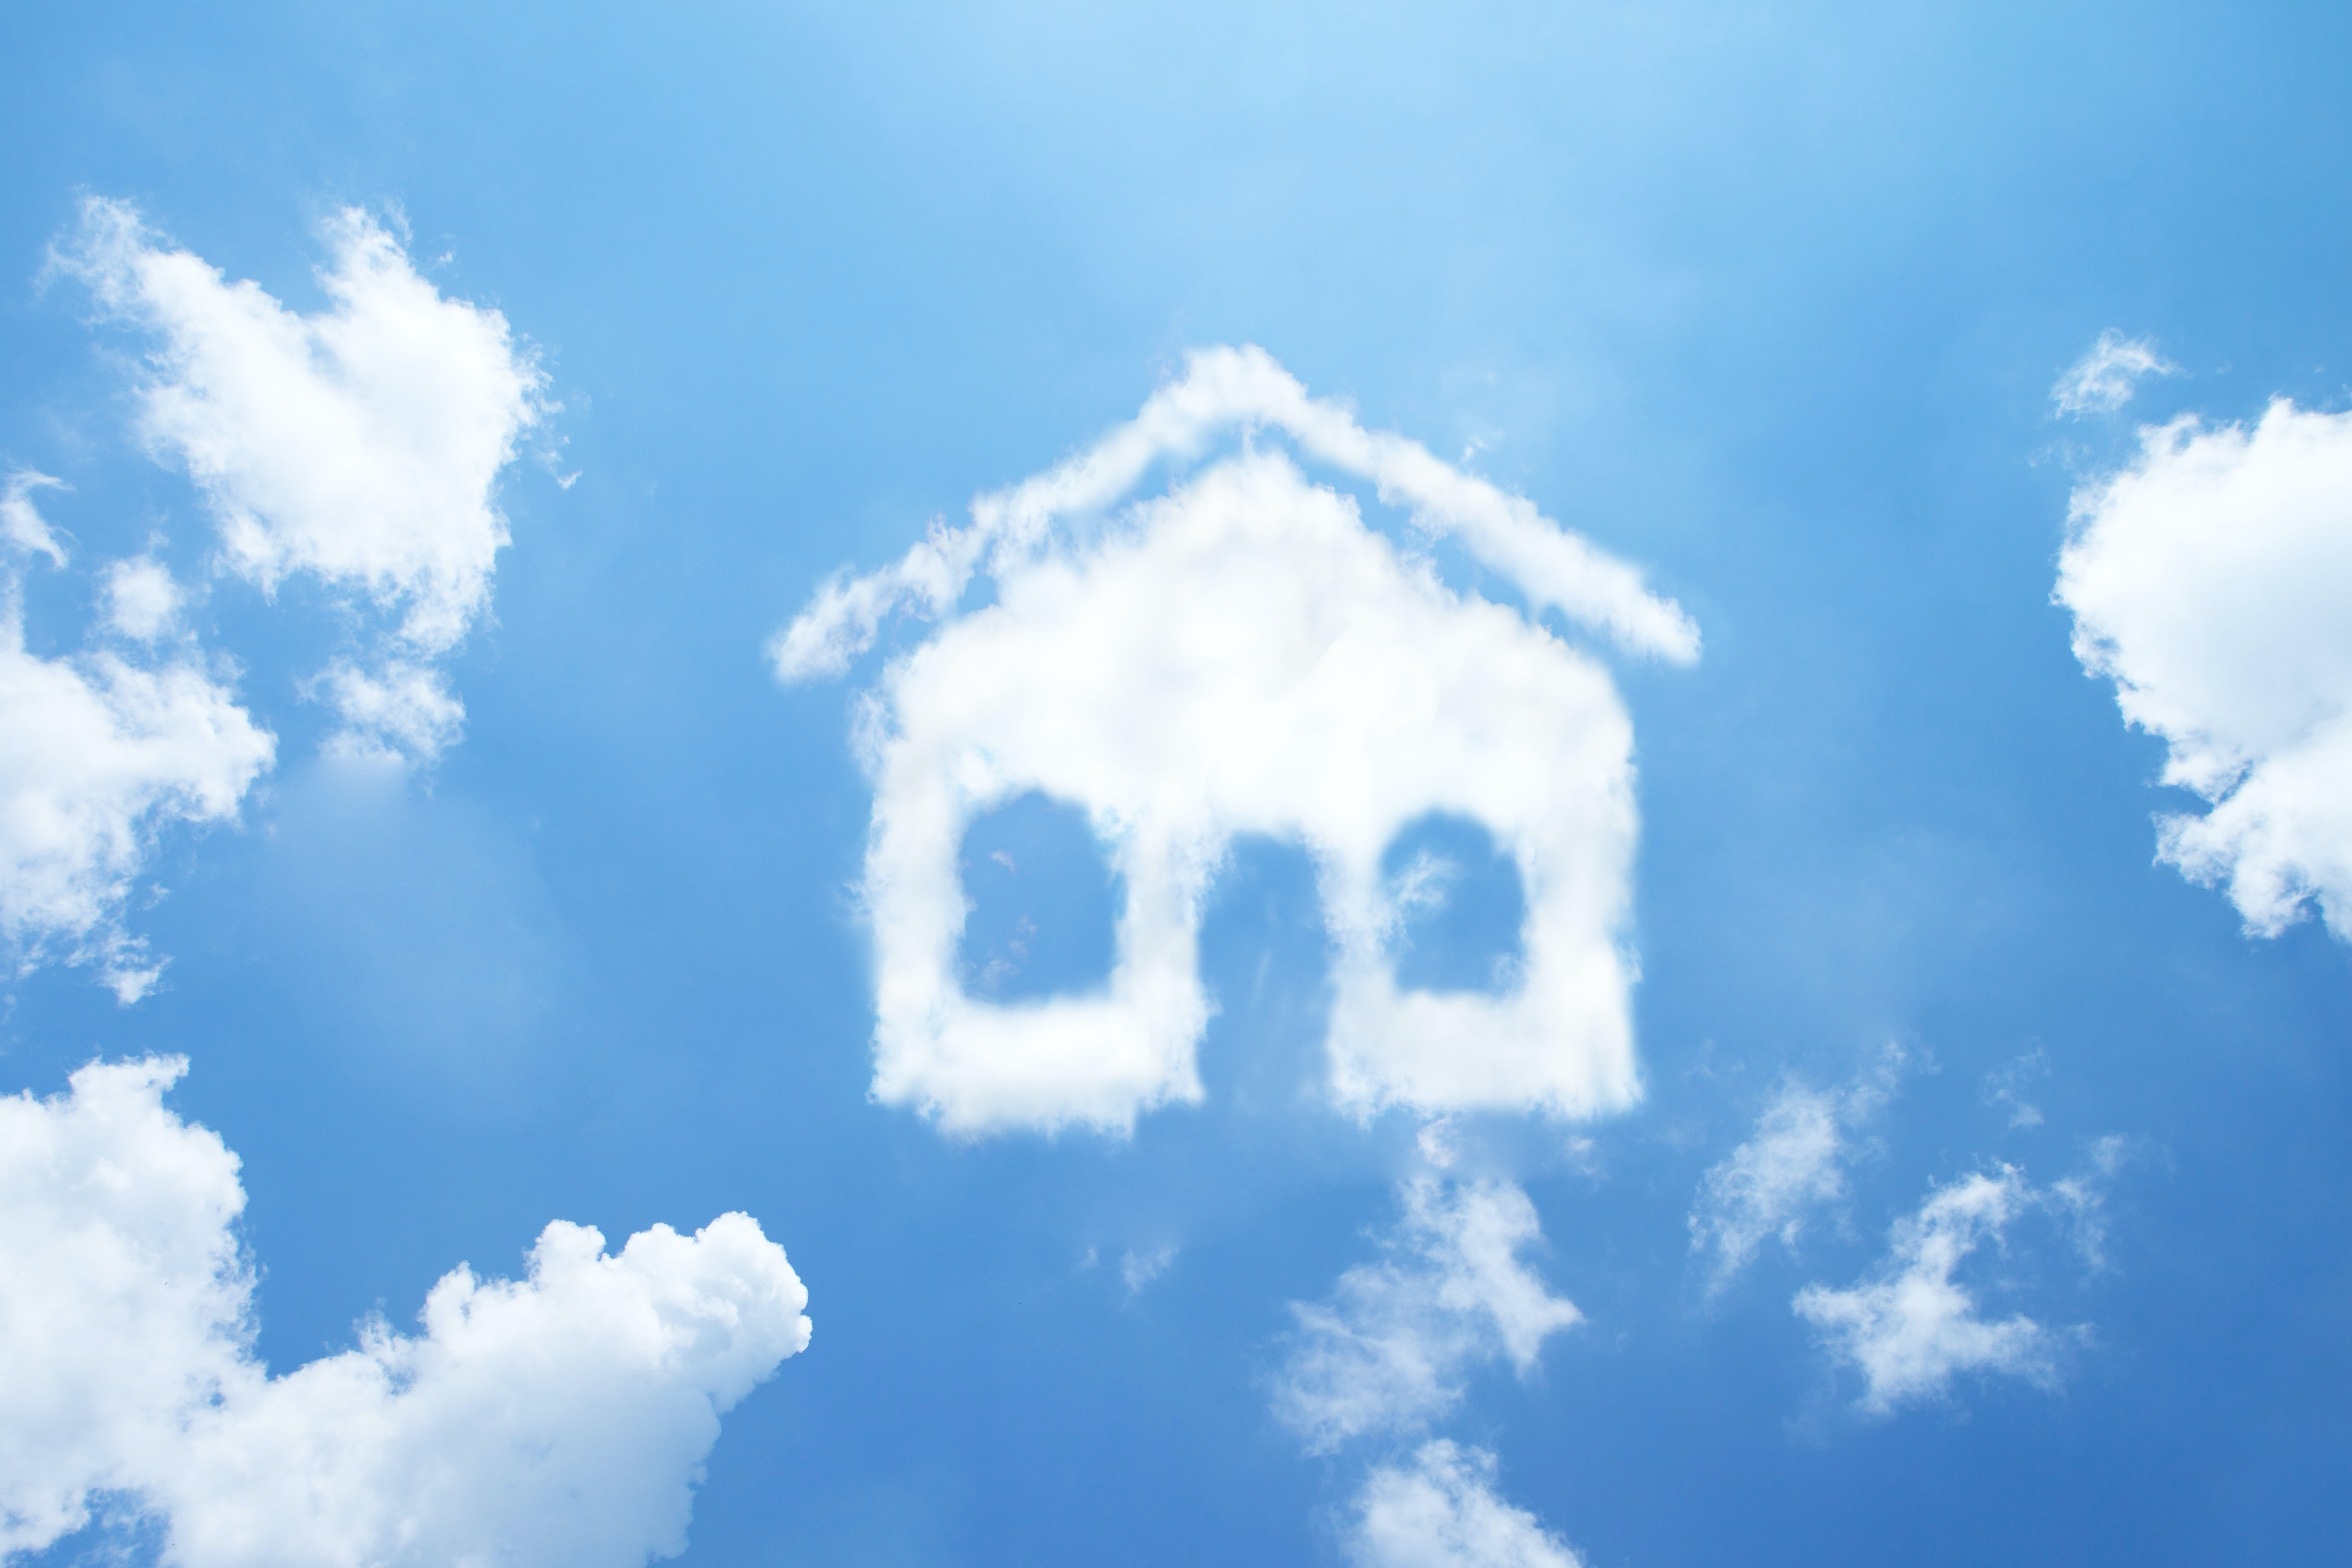 A combined on-premise and custom cloud infrastructure for the woningpas project, the digital passport for residences in Flanders.